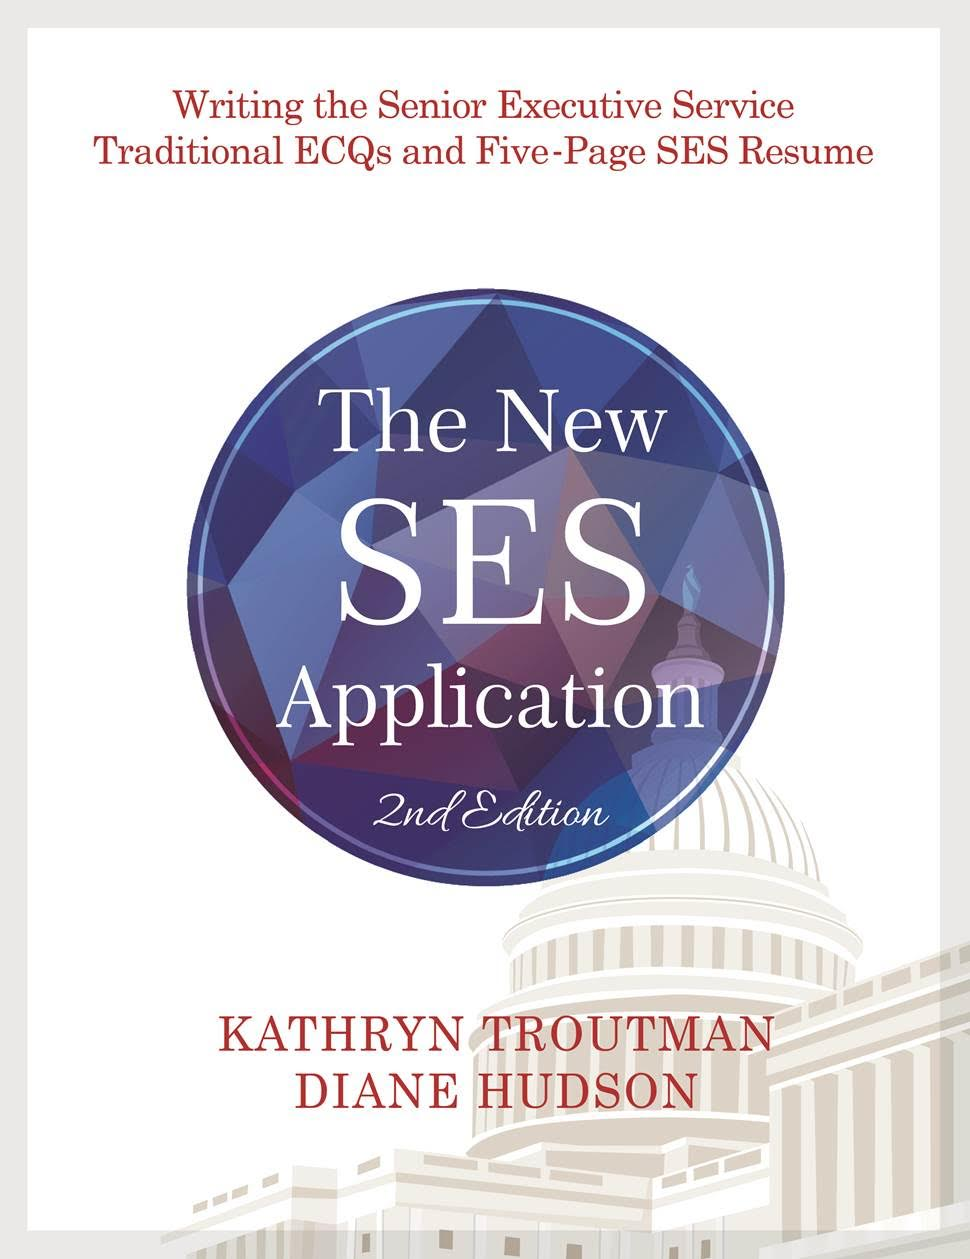 How To Write Ses Ecqs Applications Guide Book